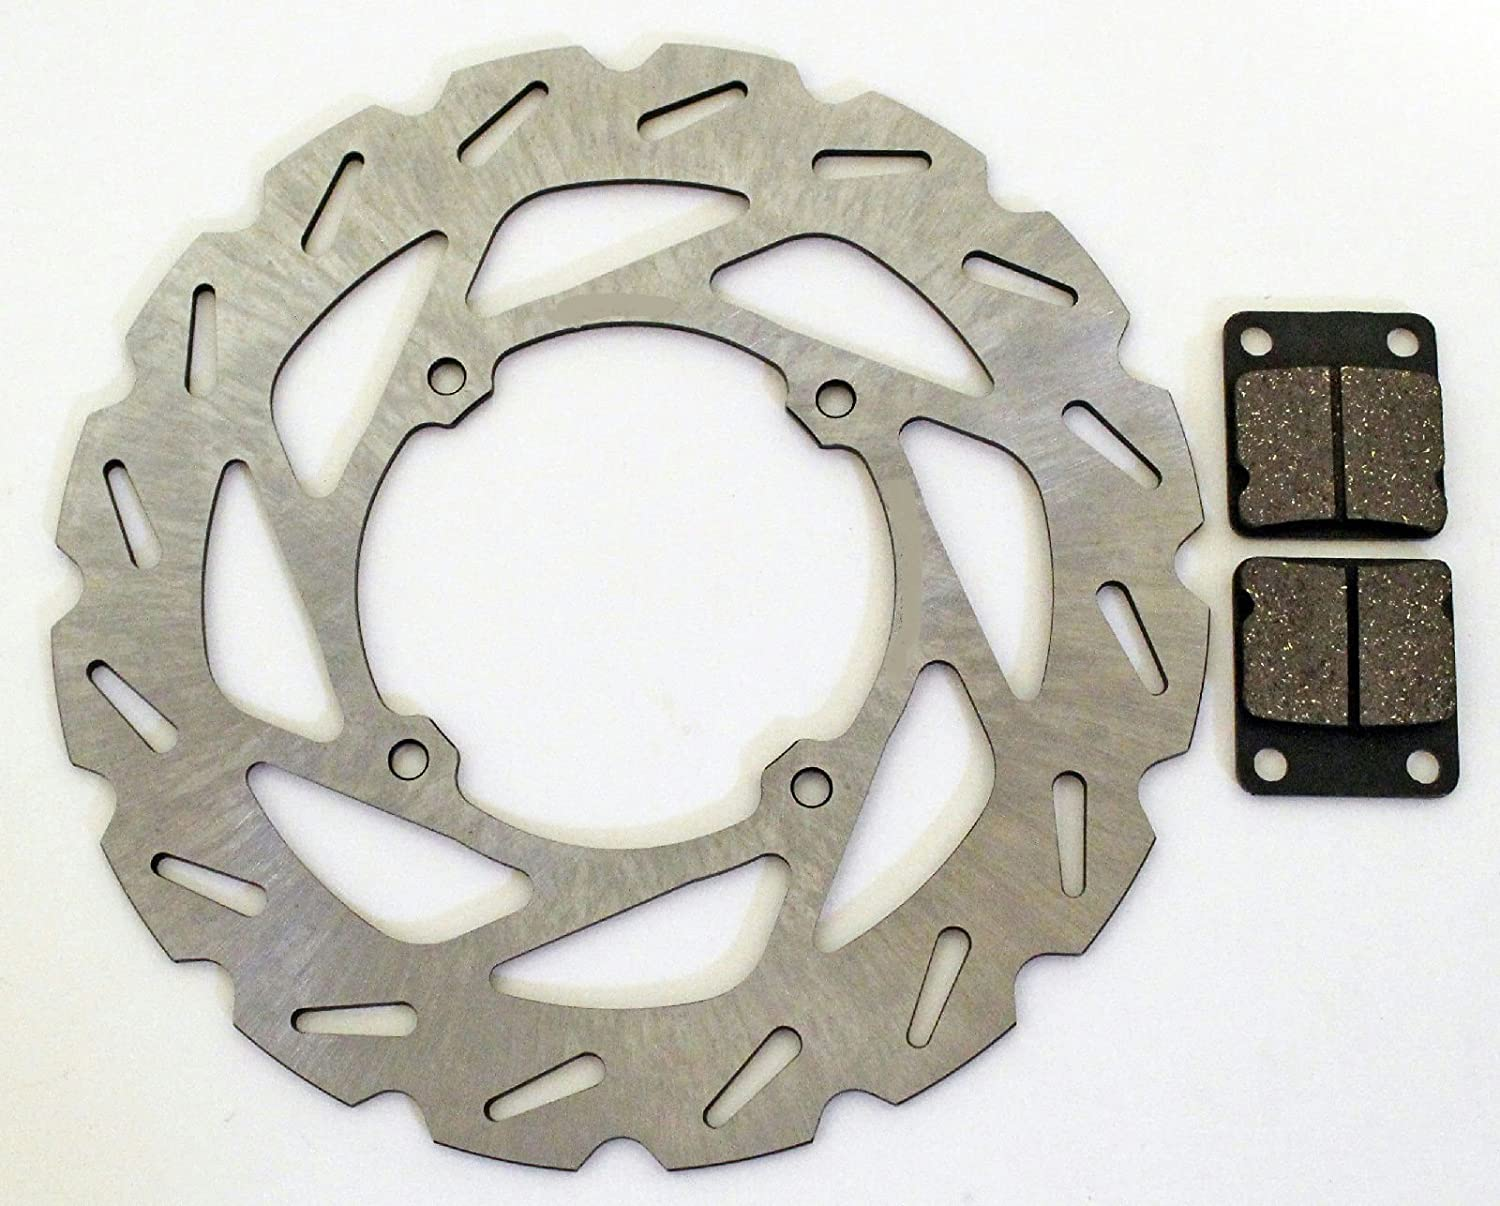 Fits Honda CRF150R and CRF150RB Expert Front Brake Pads and Sport Rotor